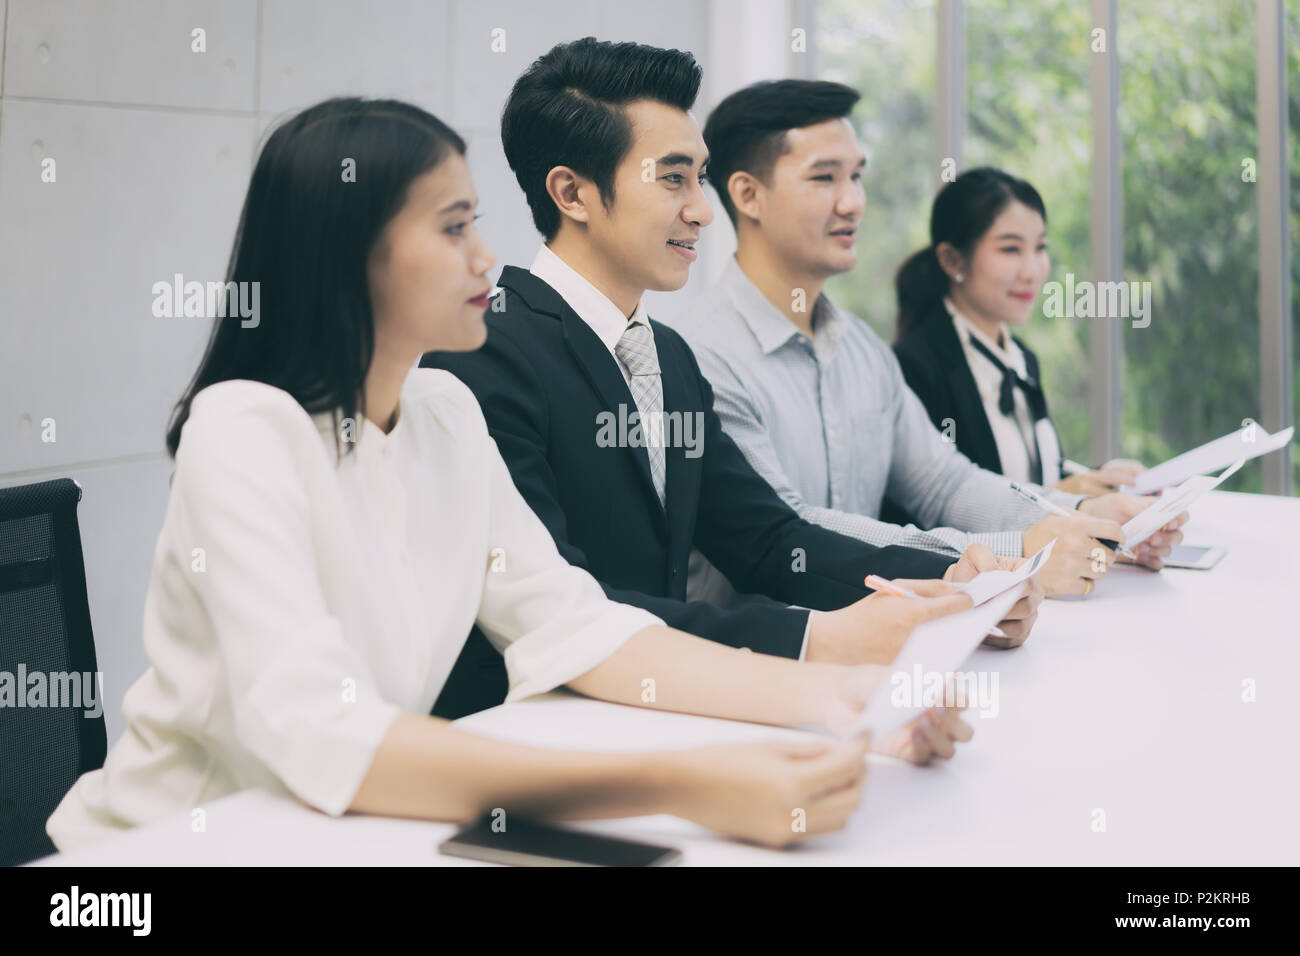 Cheerful business man sitting with other professionals waiting for job interview. Group of people waiting for job interview in office - Stock Image